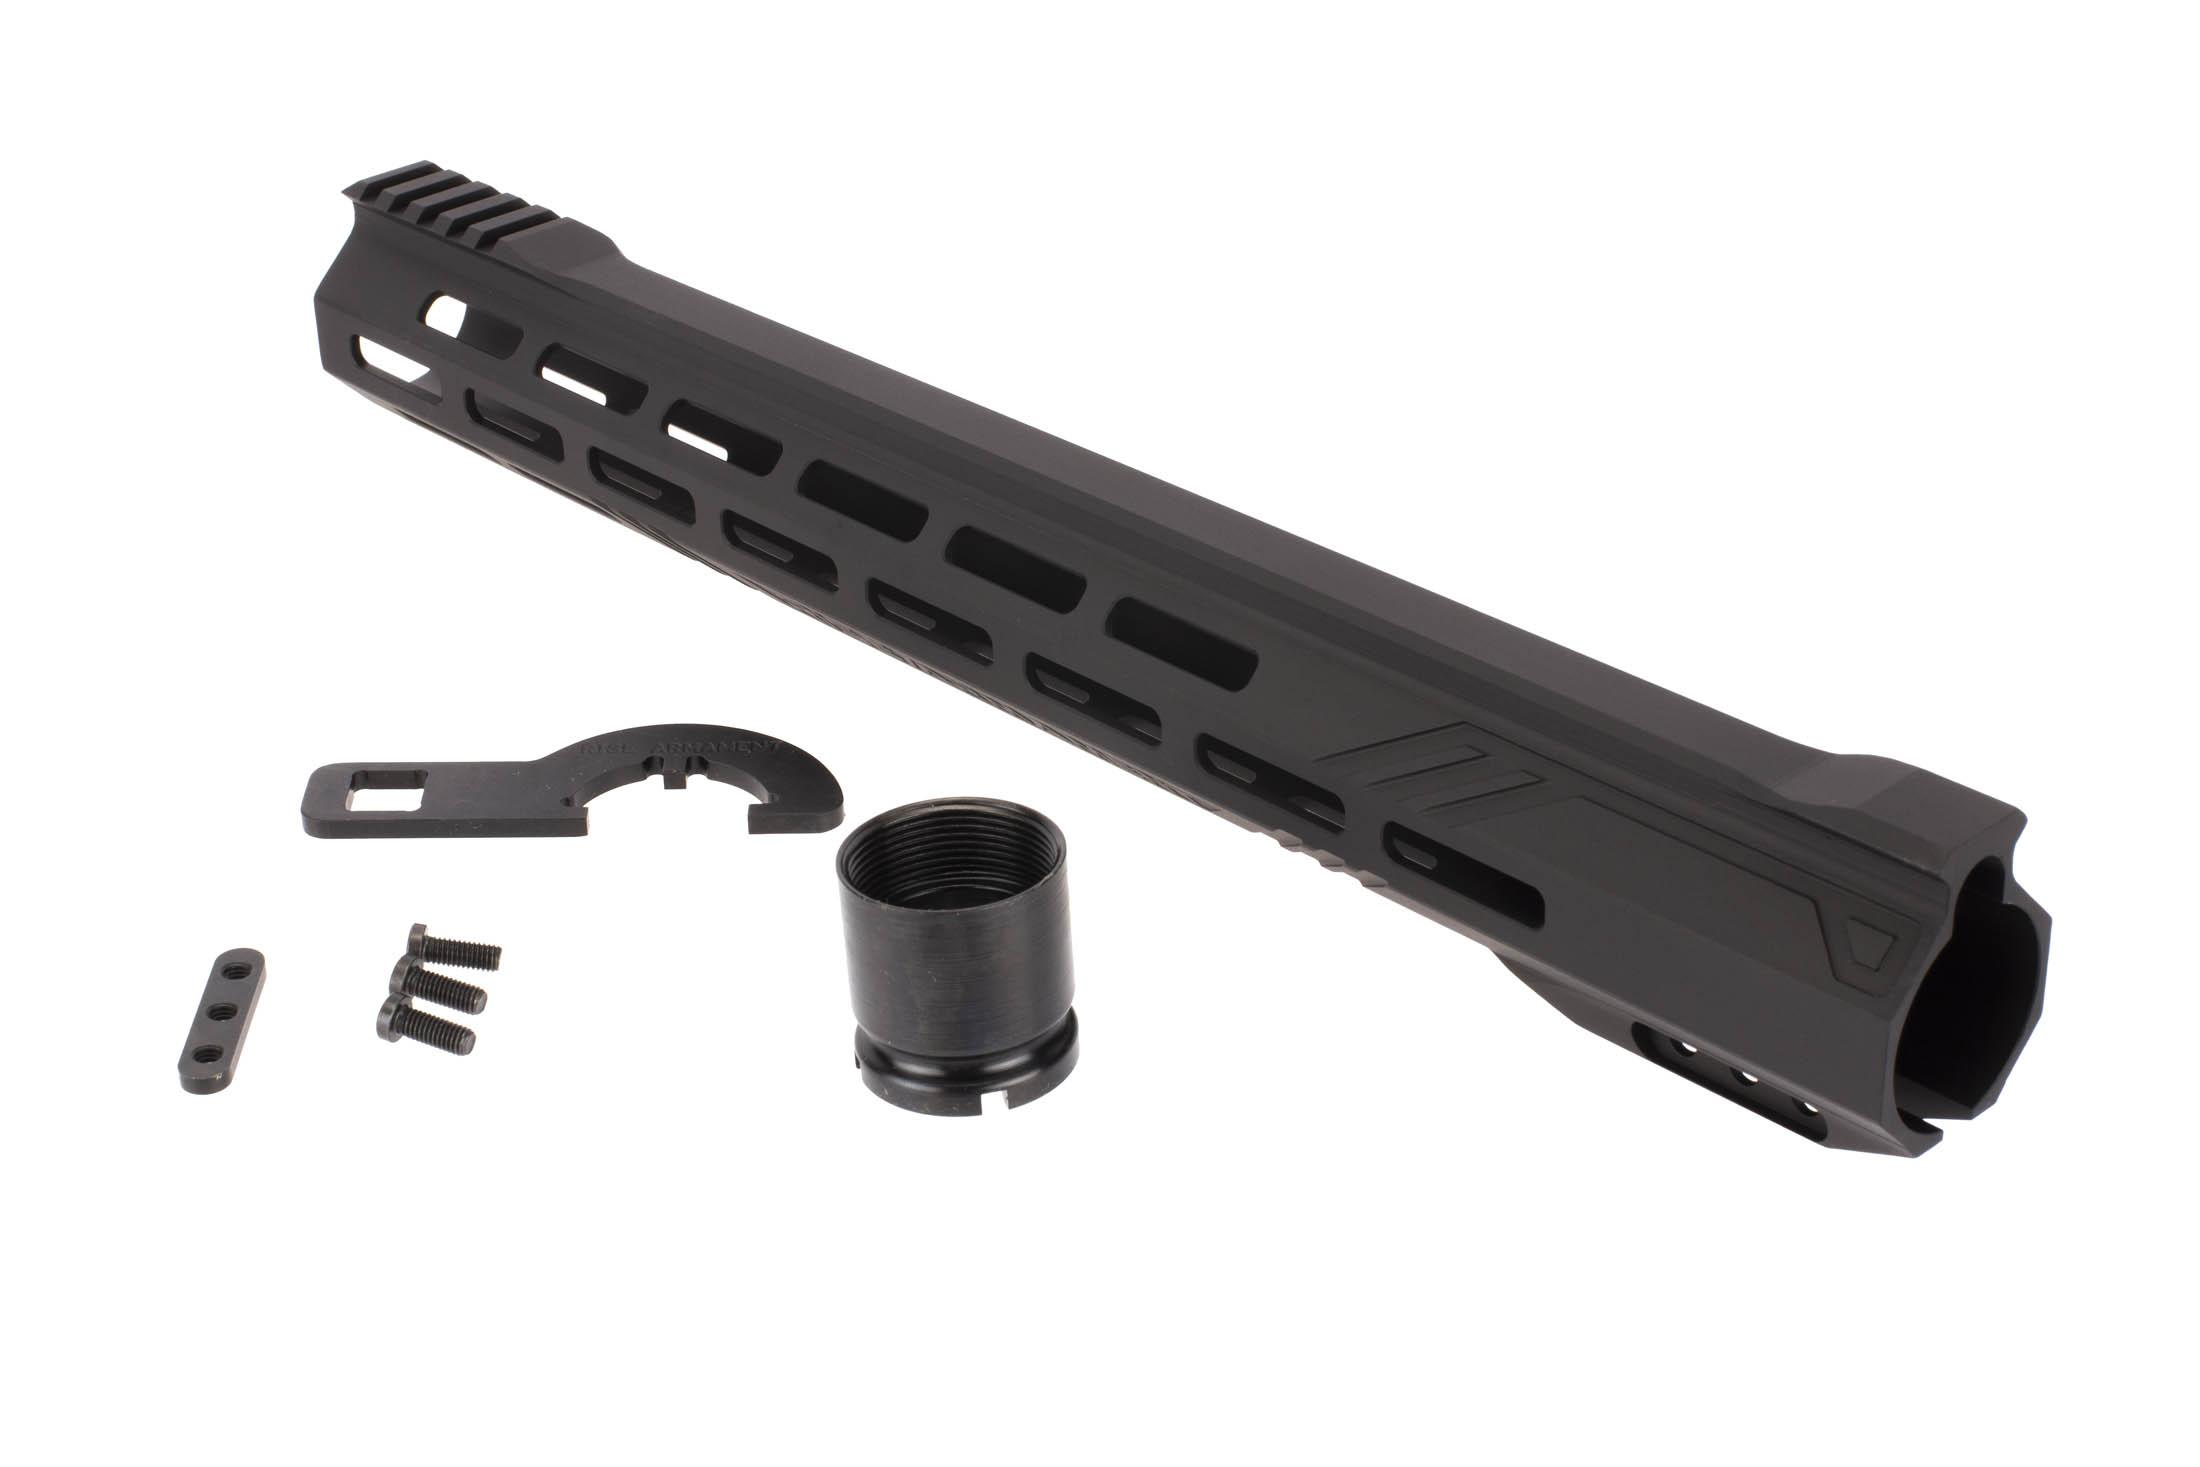 The RISE Armament 15in Stinger Slimline M-LOK Handguard is machined from 6061-T6 aluminum billet.